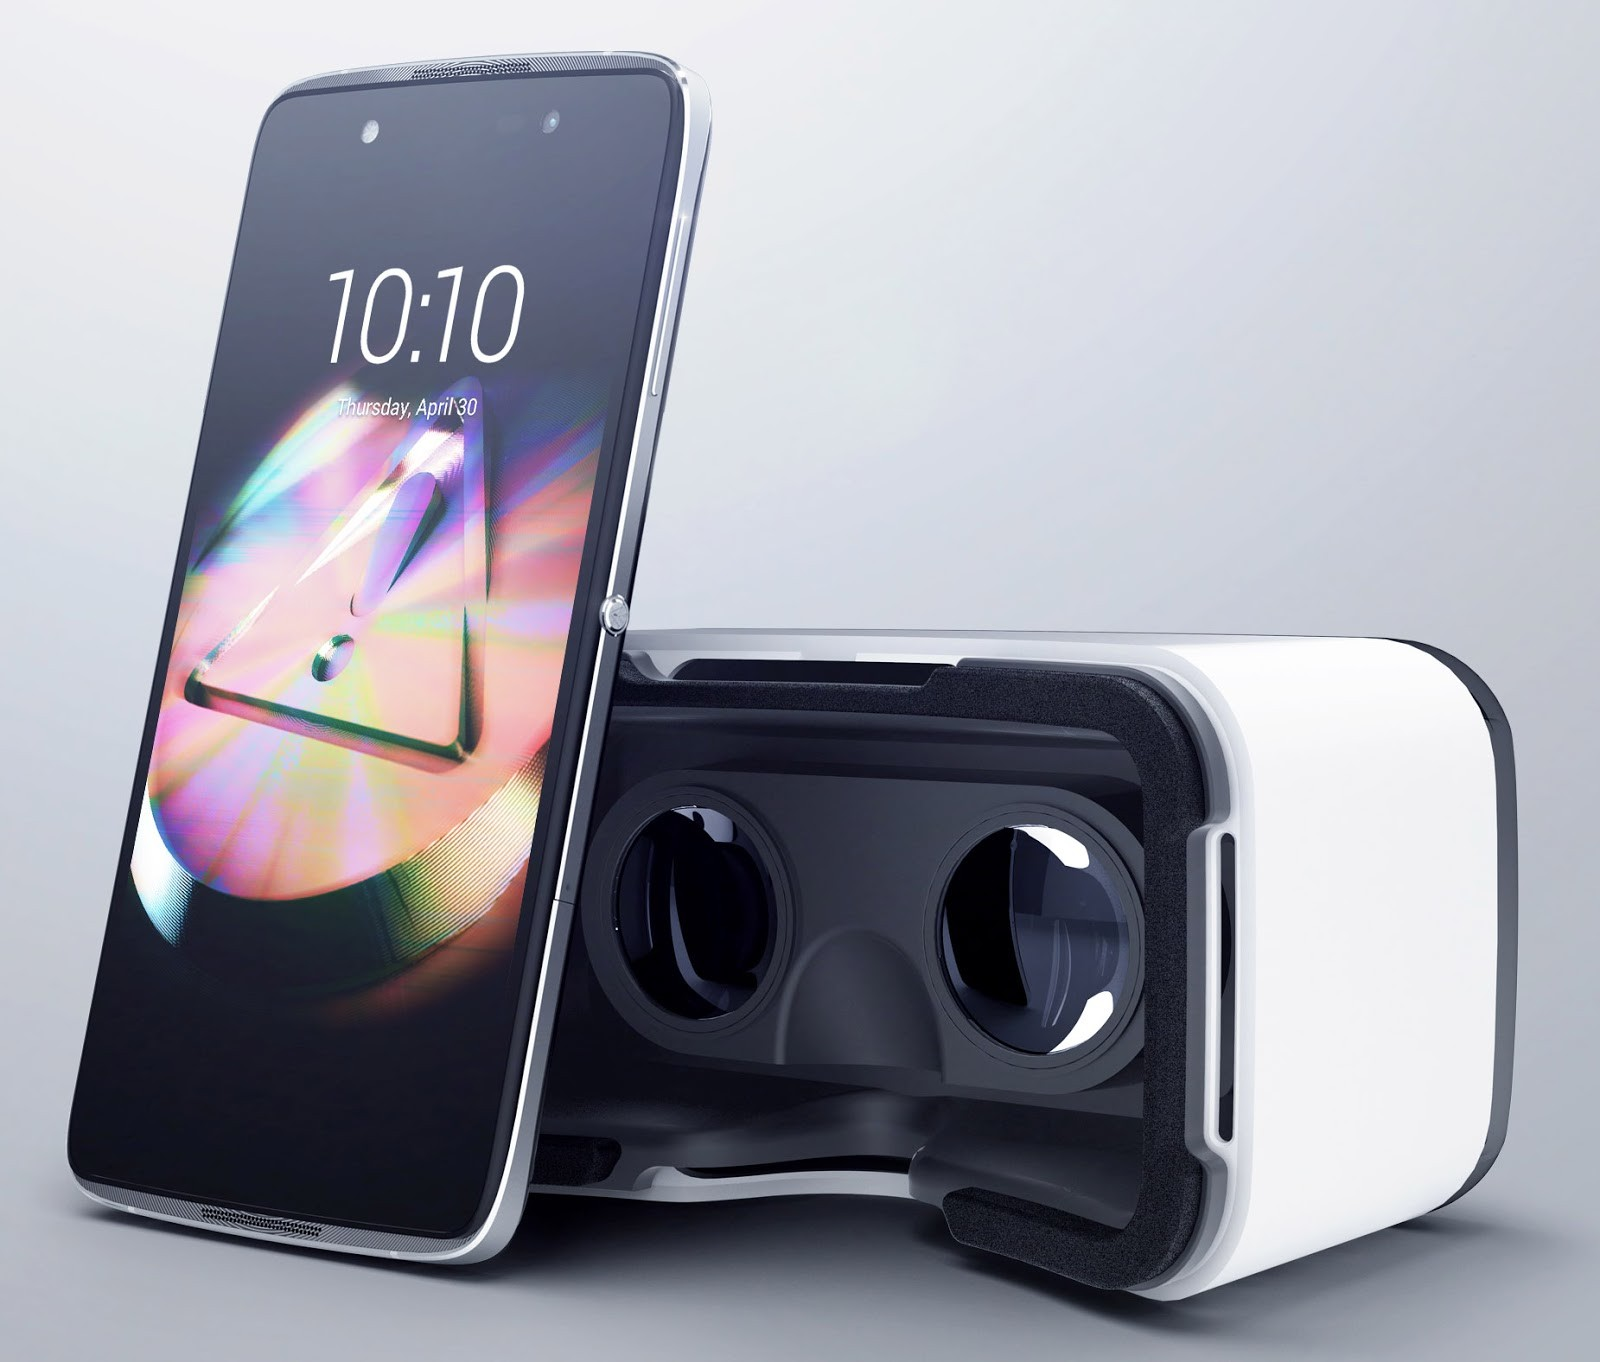 alcatel idol 4s specifications factory reset and user manual. Black Bedroom Furniture Sets. Home Design Ideas